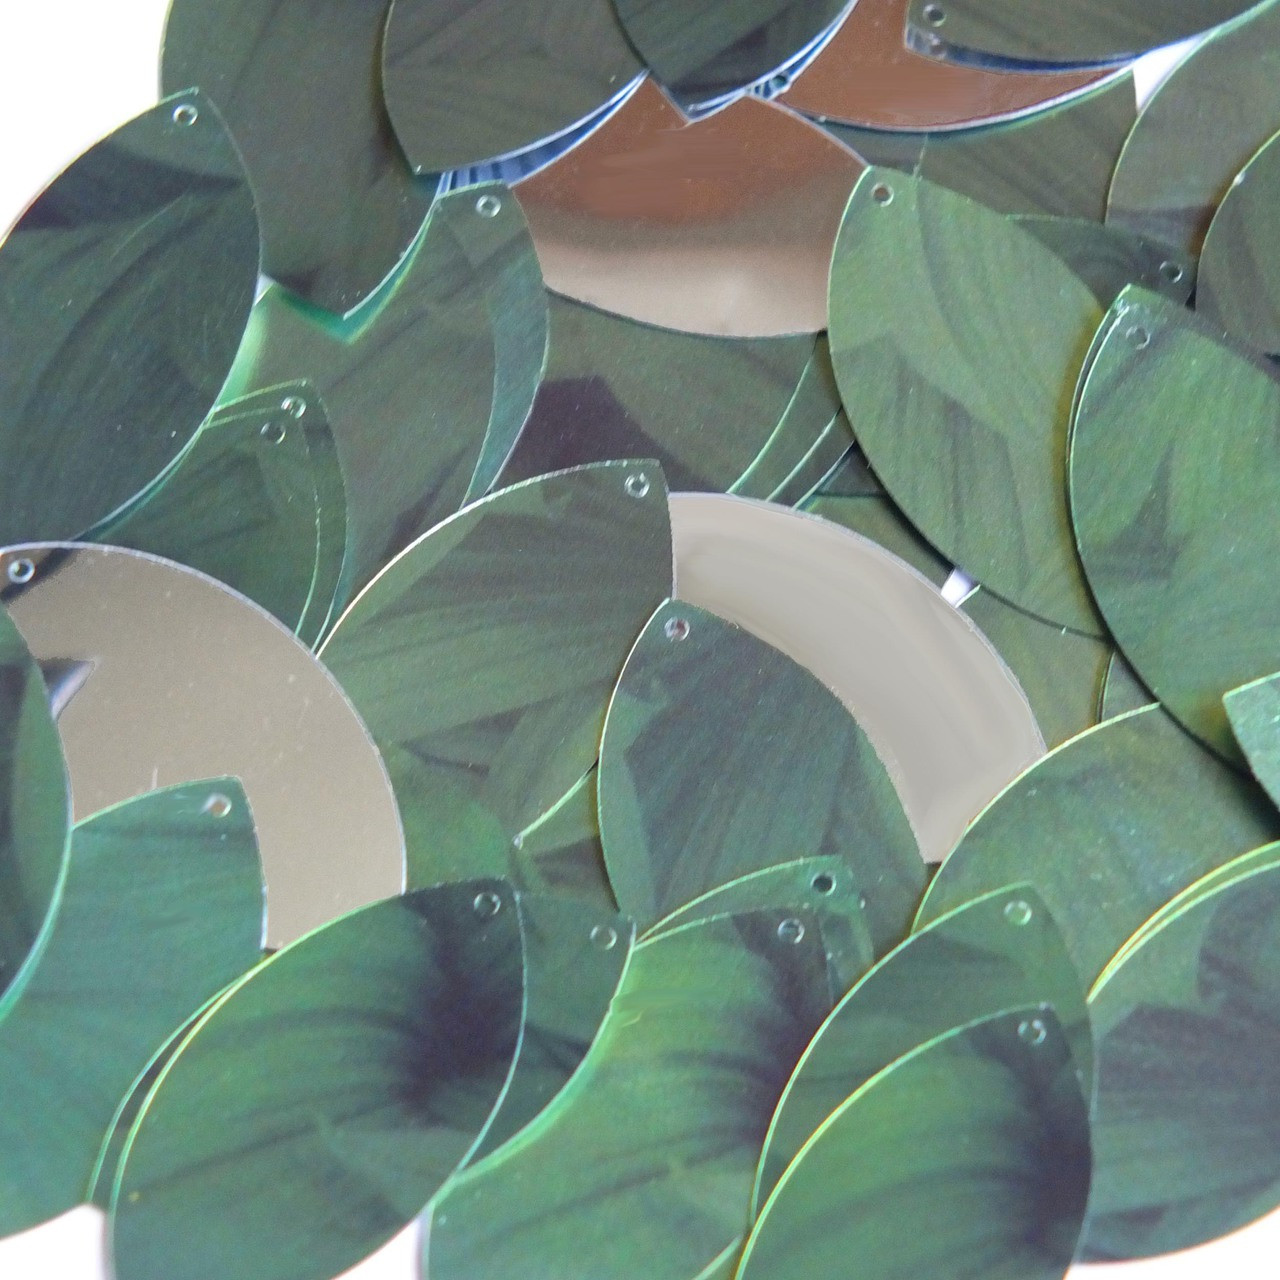 Green Navette Leaf Sequins Metallic Shiny 1.5 inch Couture Paillettes